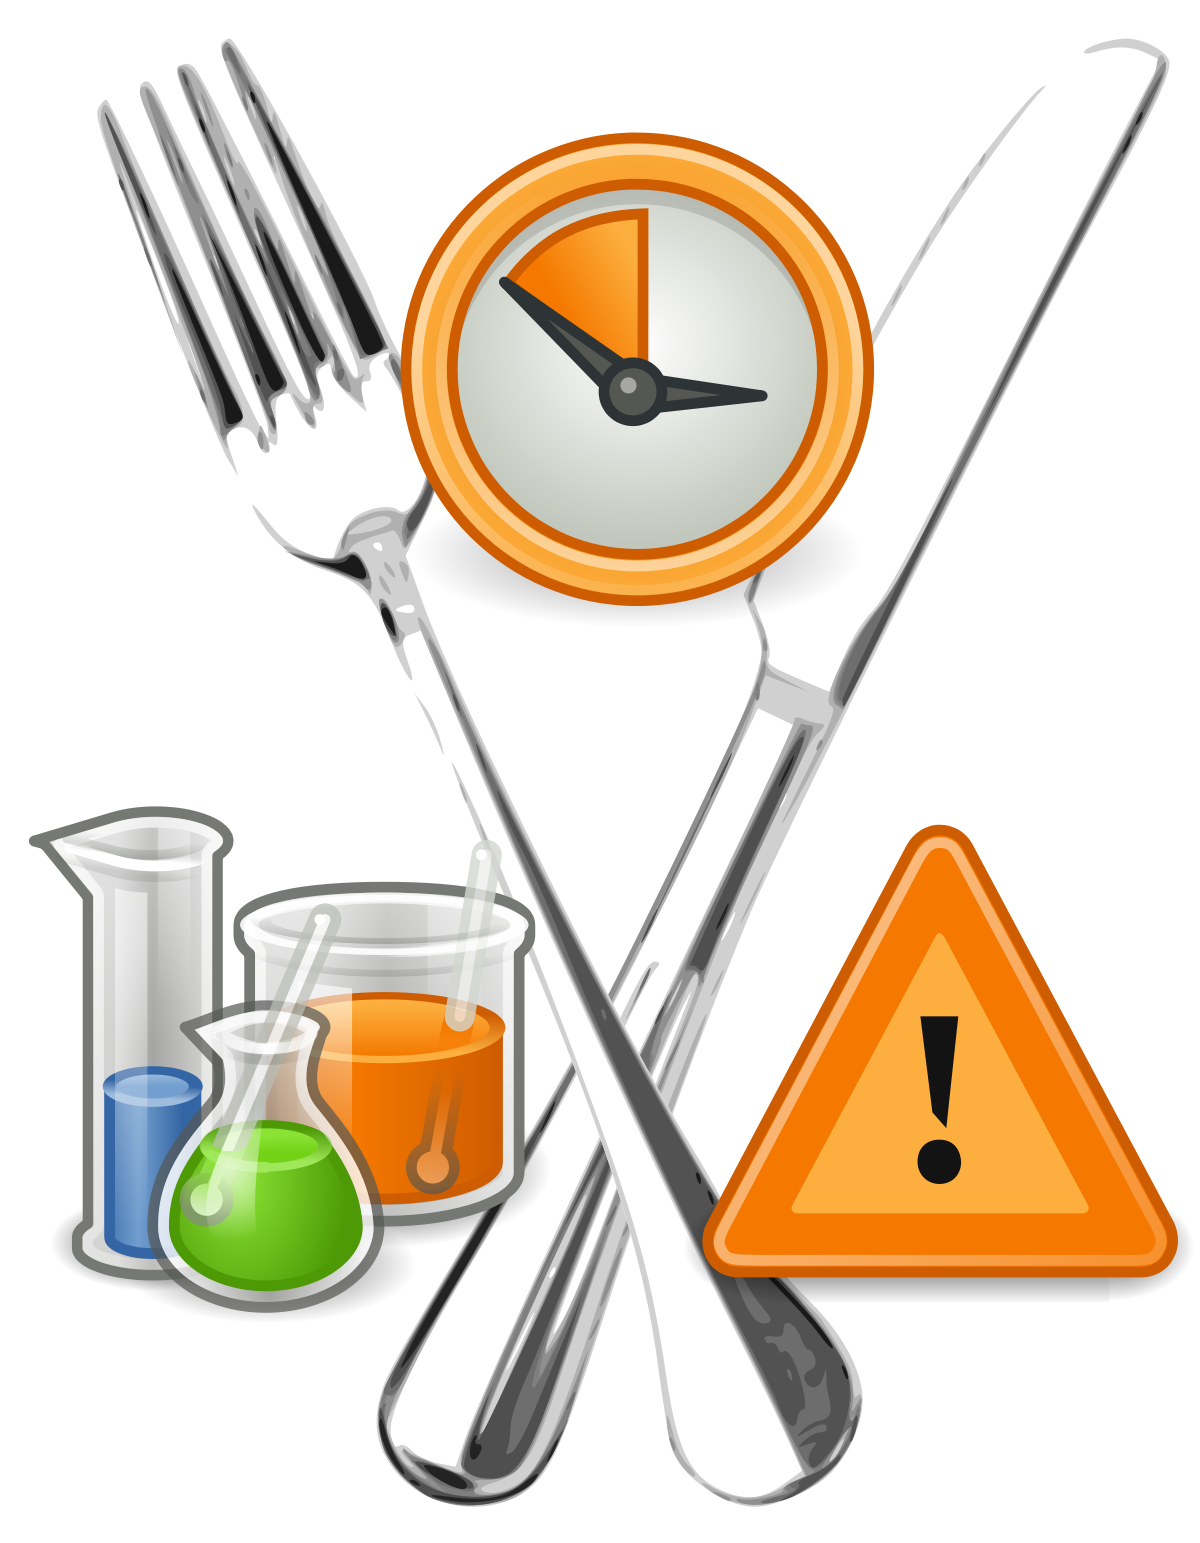 Bacteria clipart lab safety. Food wikipedia